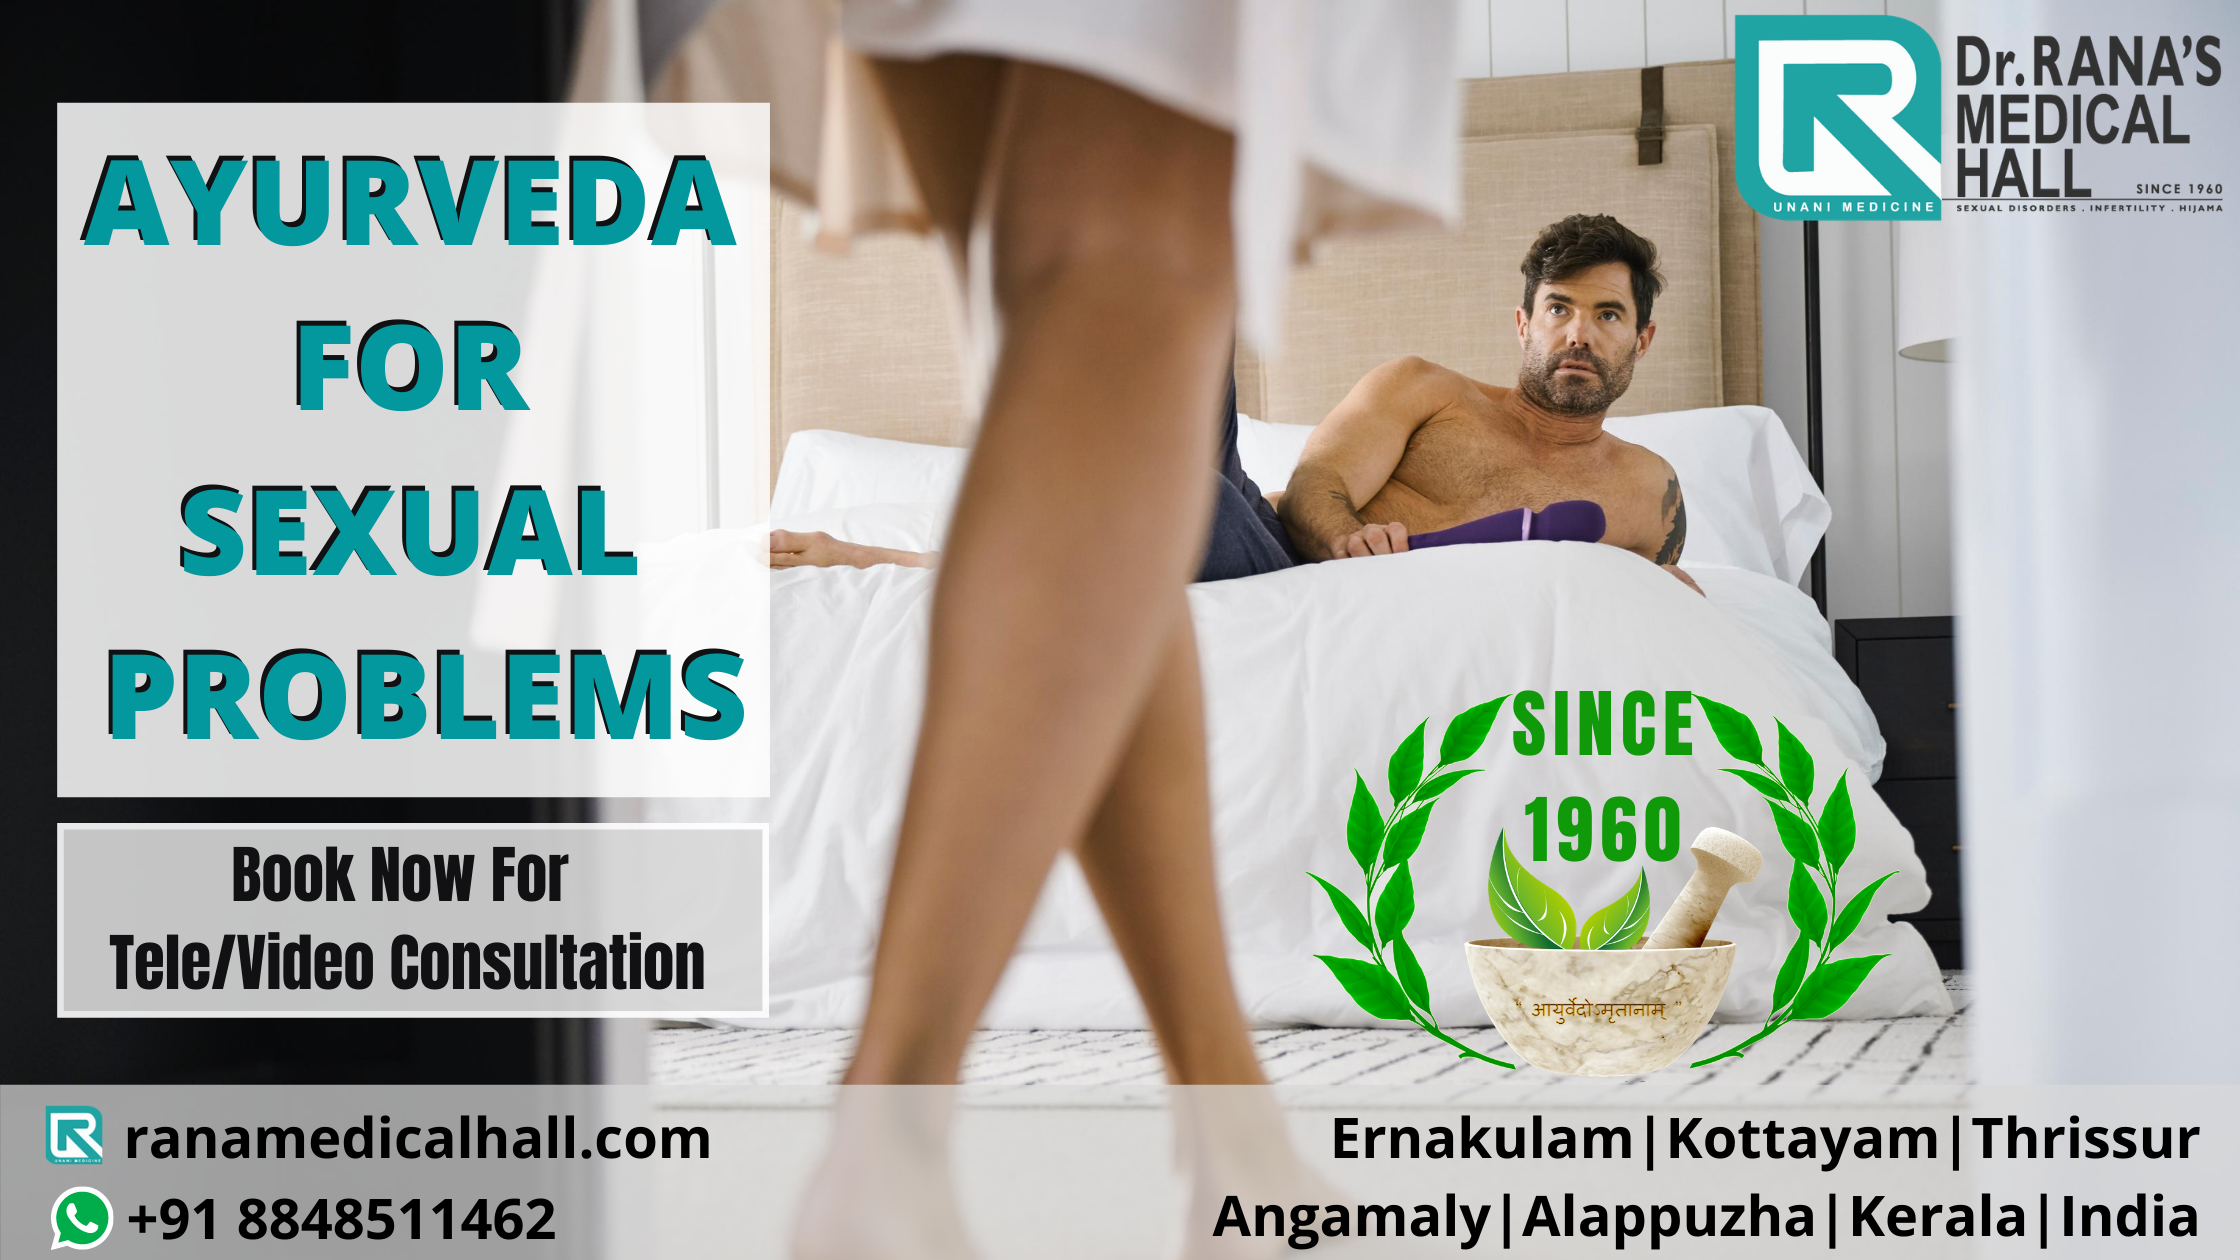 Ayurveda for Sexual Problems